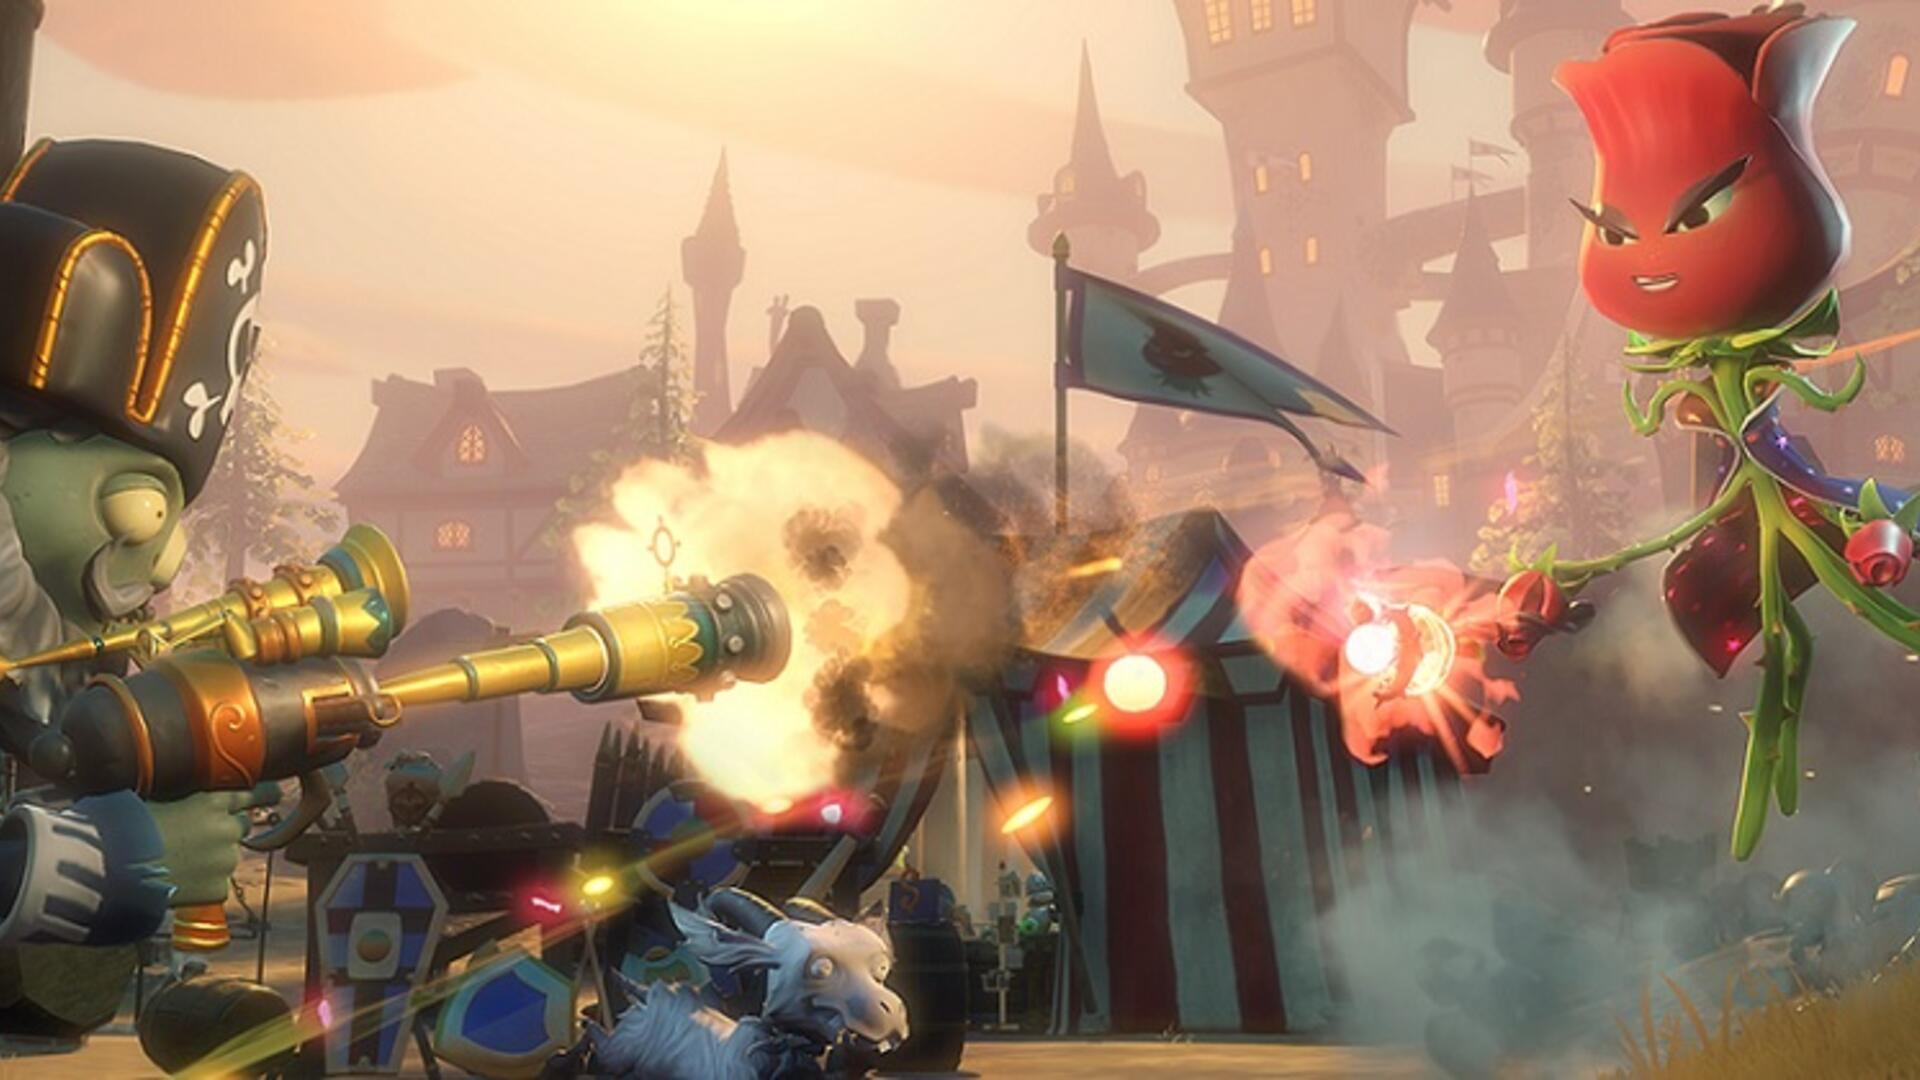 Plants vs. Zombies: Garden Warfare 2 Xbox One Review: More Expansion than Sequel